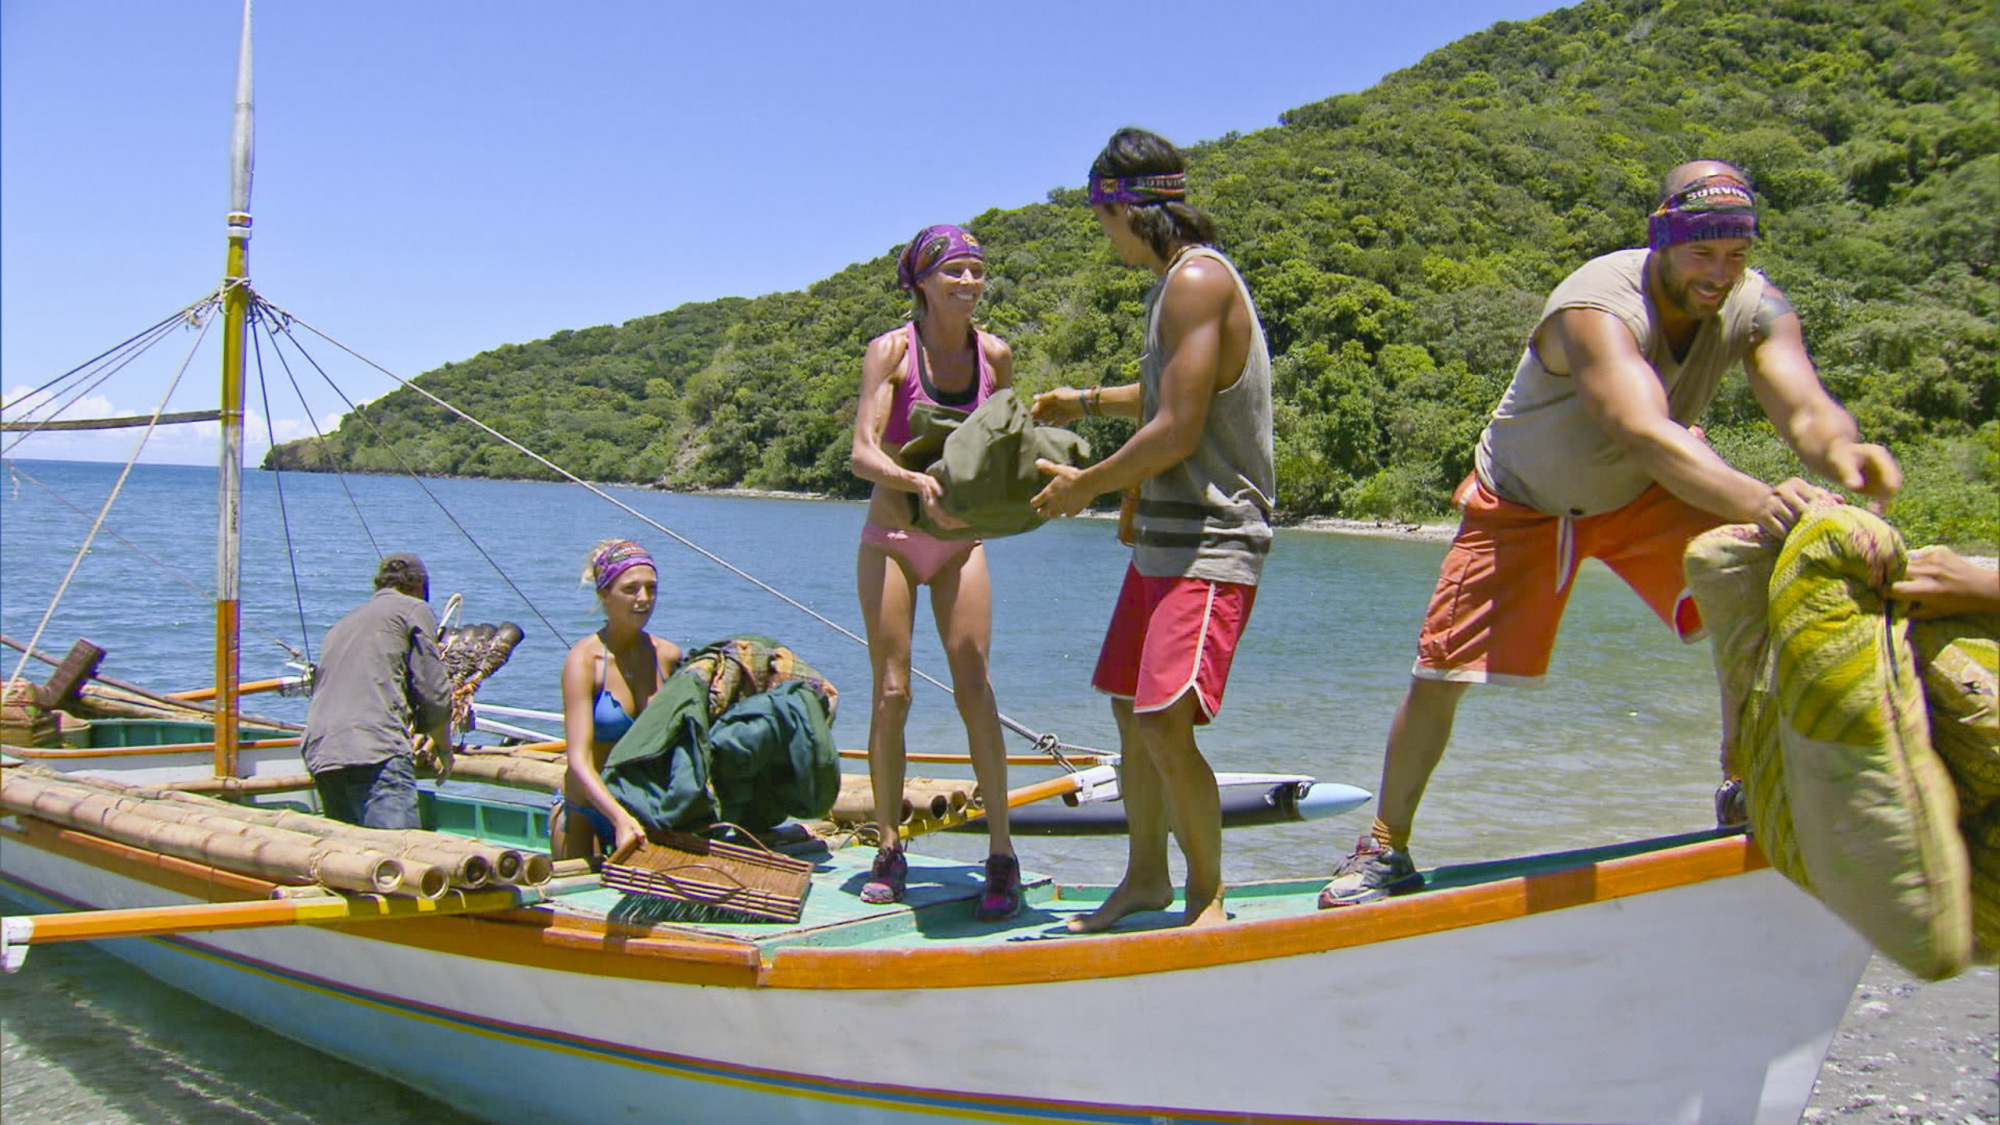 Unloading the boat in Season 28 Episode 6